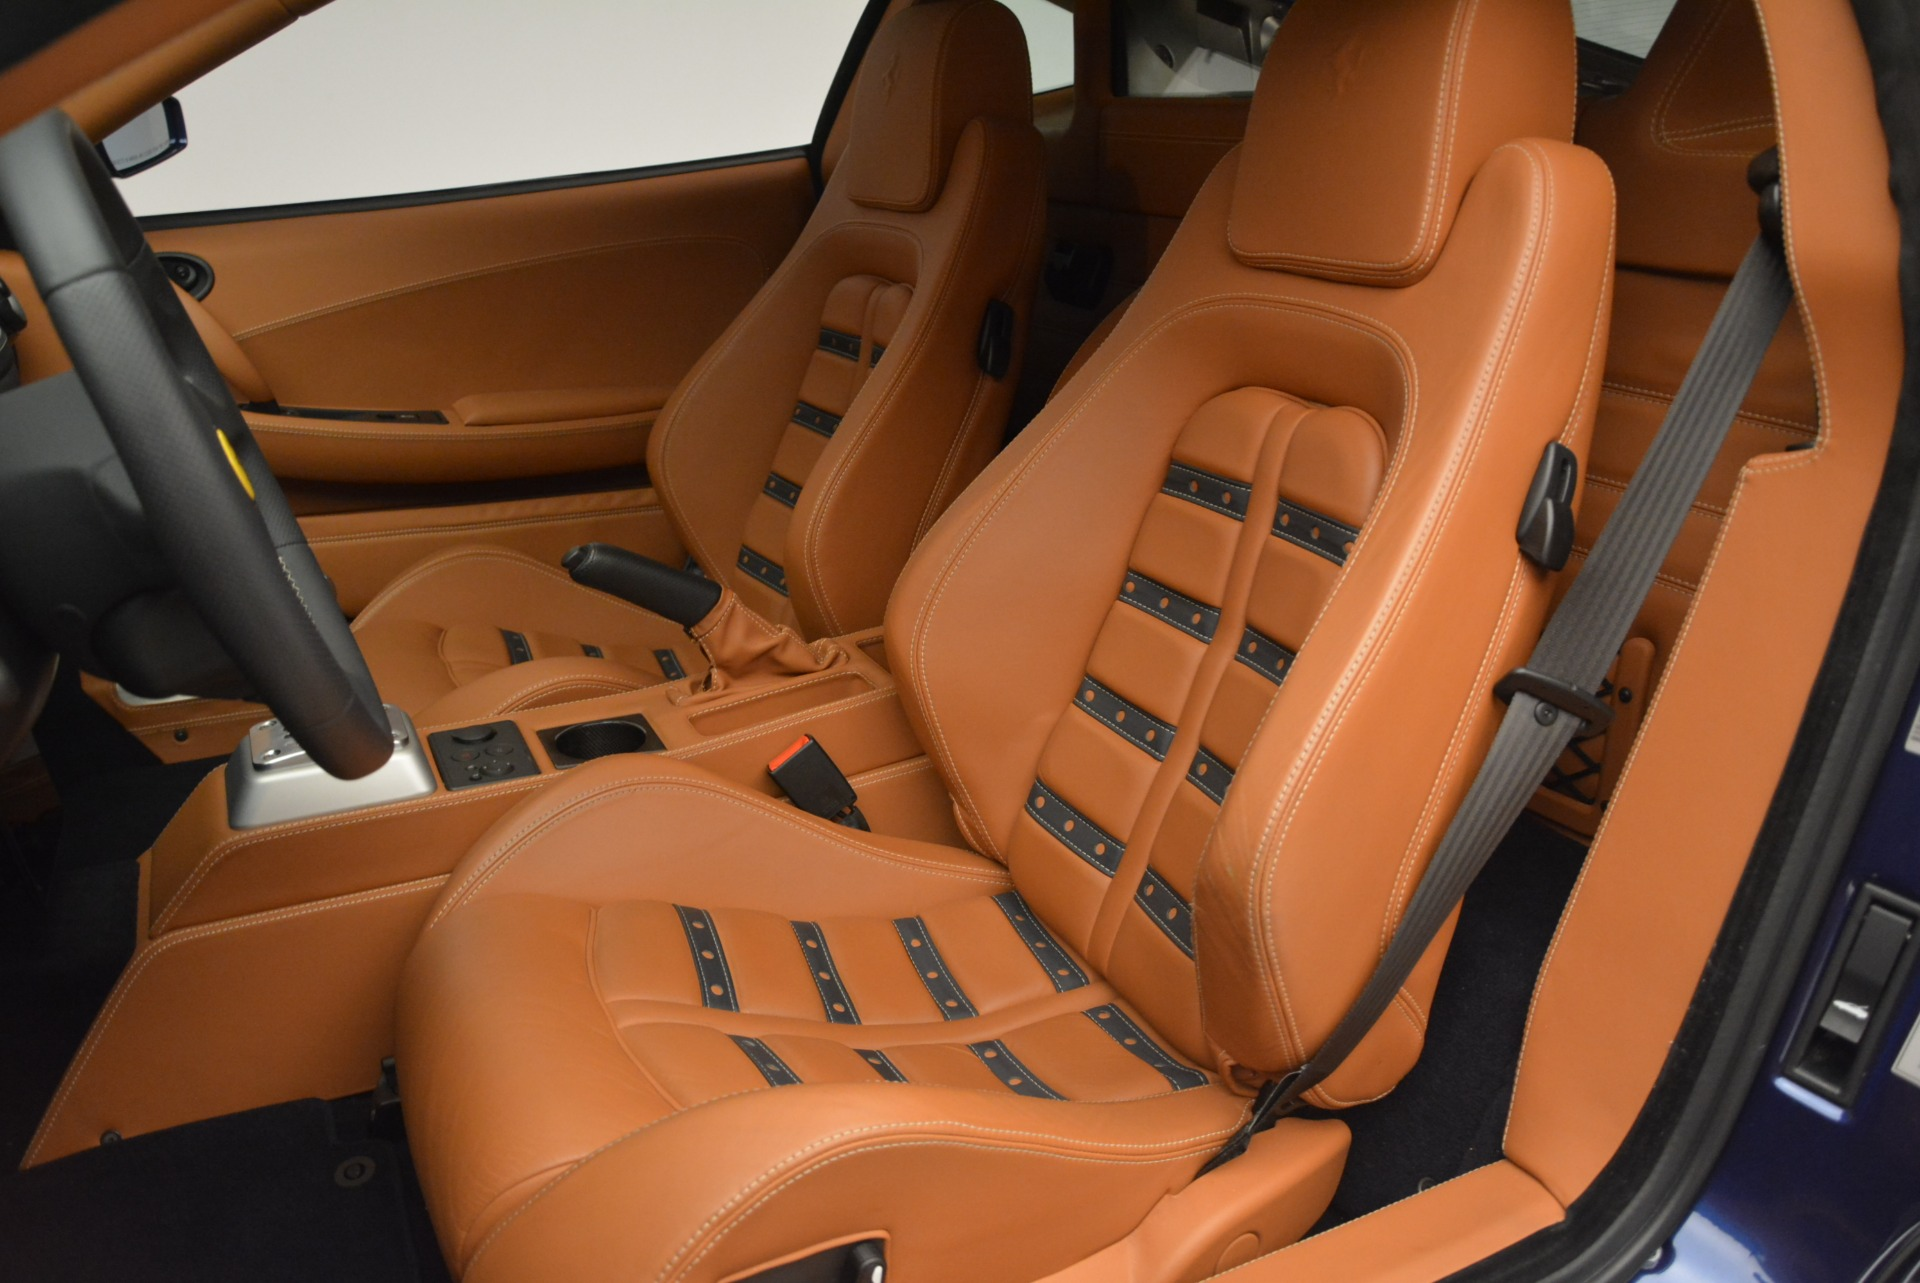 Used 2009 Ferrari F430 6-Speed Manual For Sale In Greenwich, CT 2466_p16